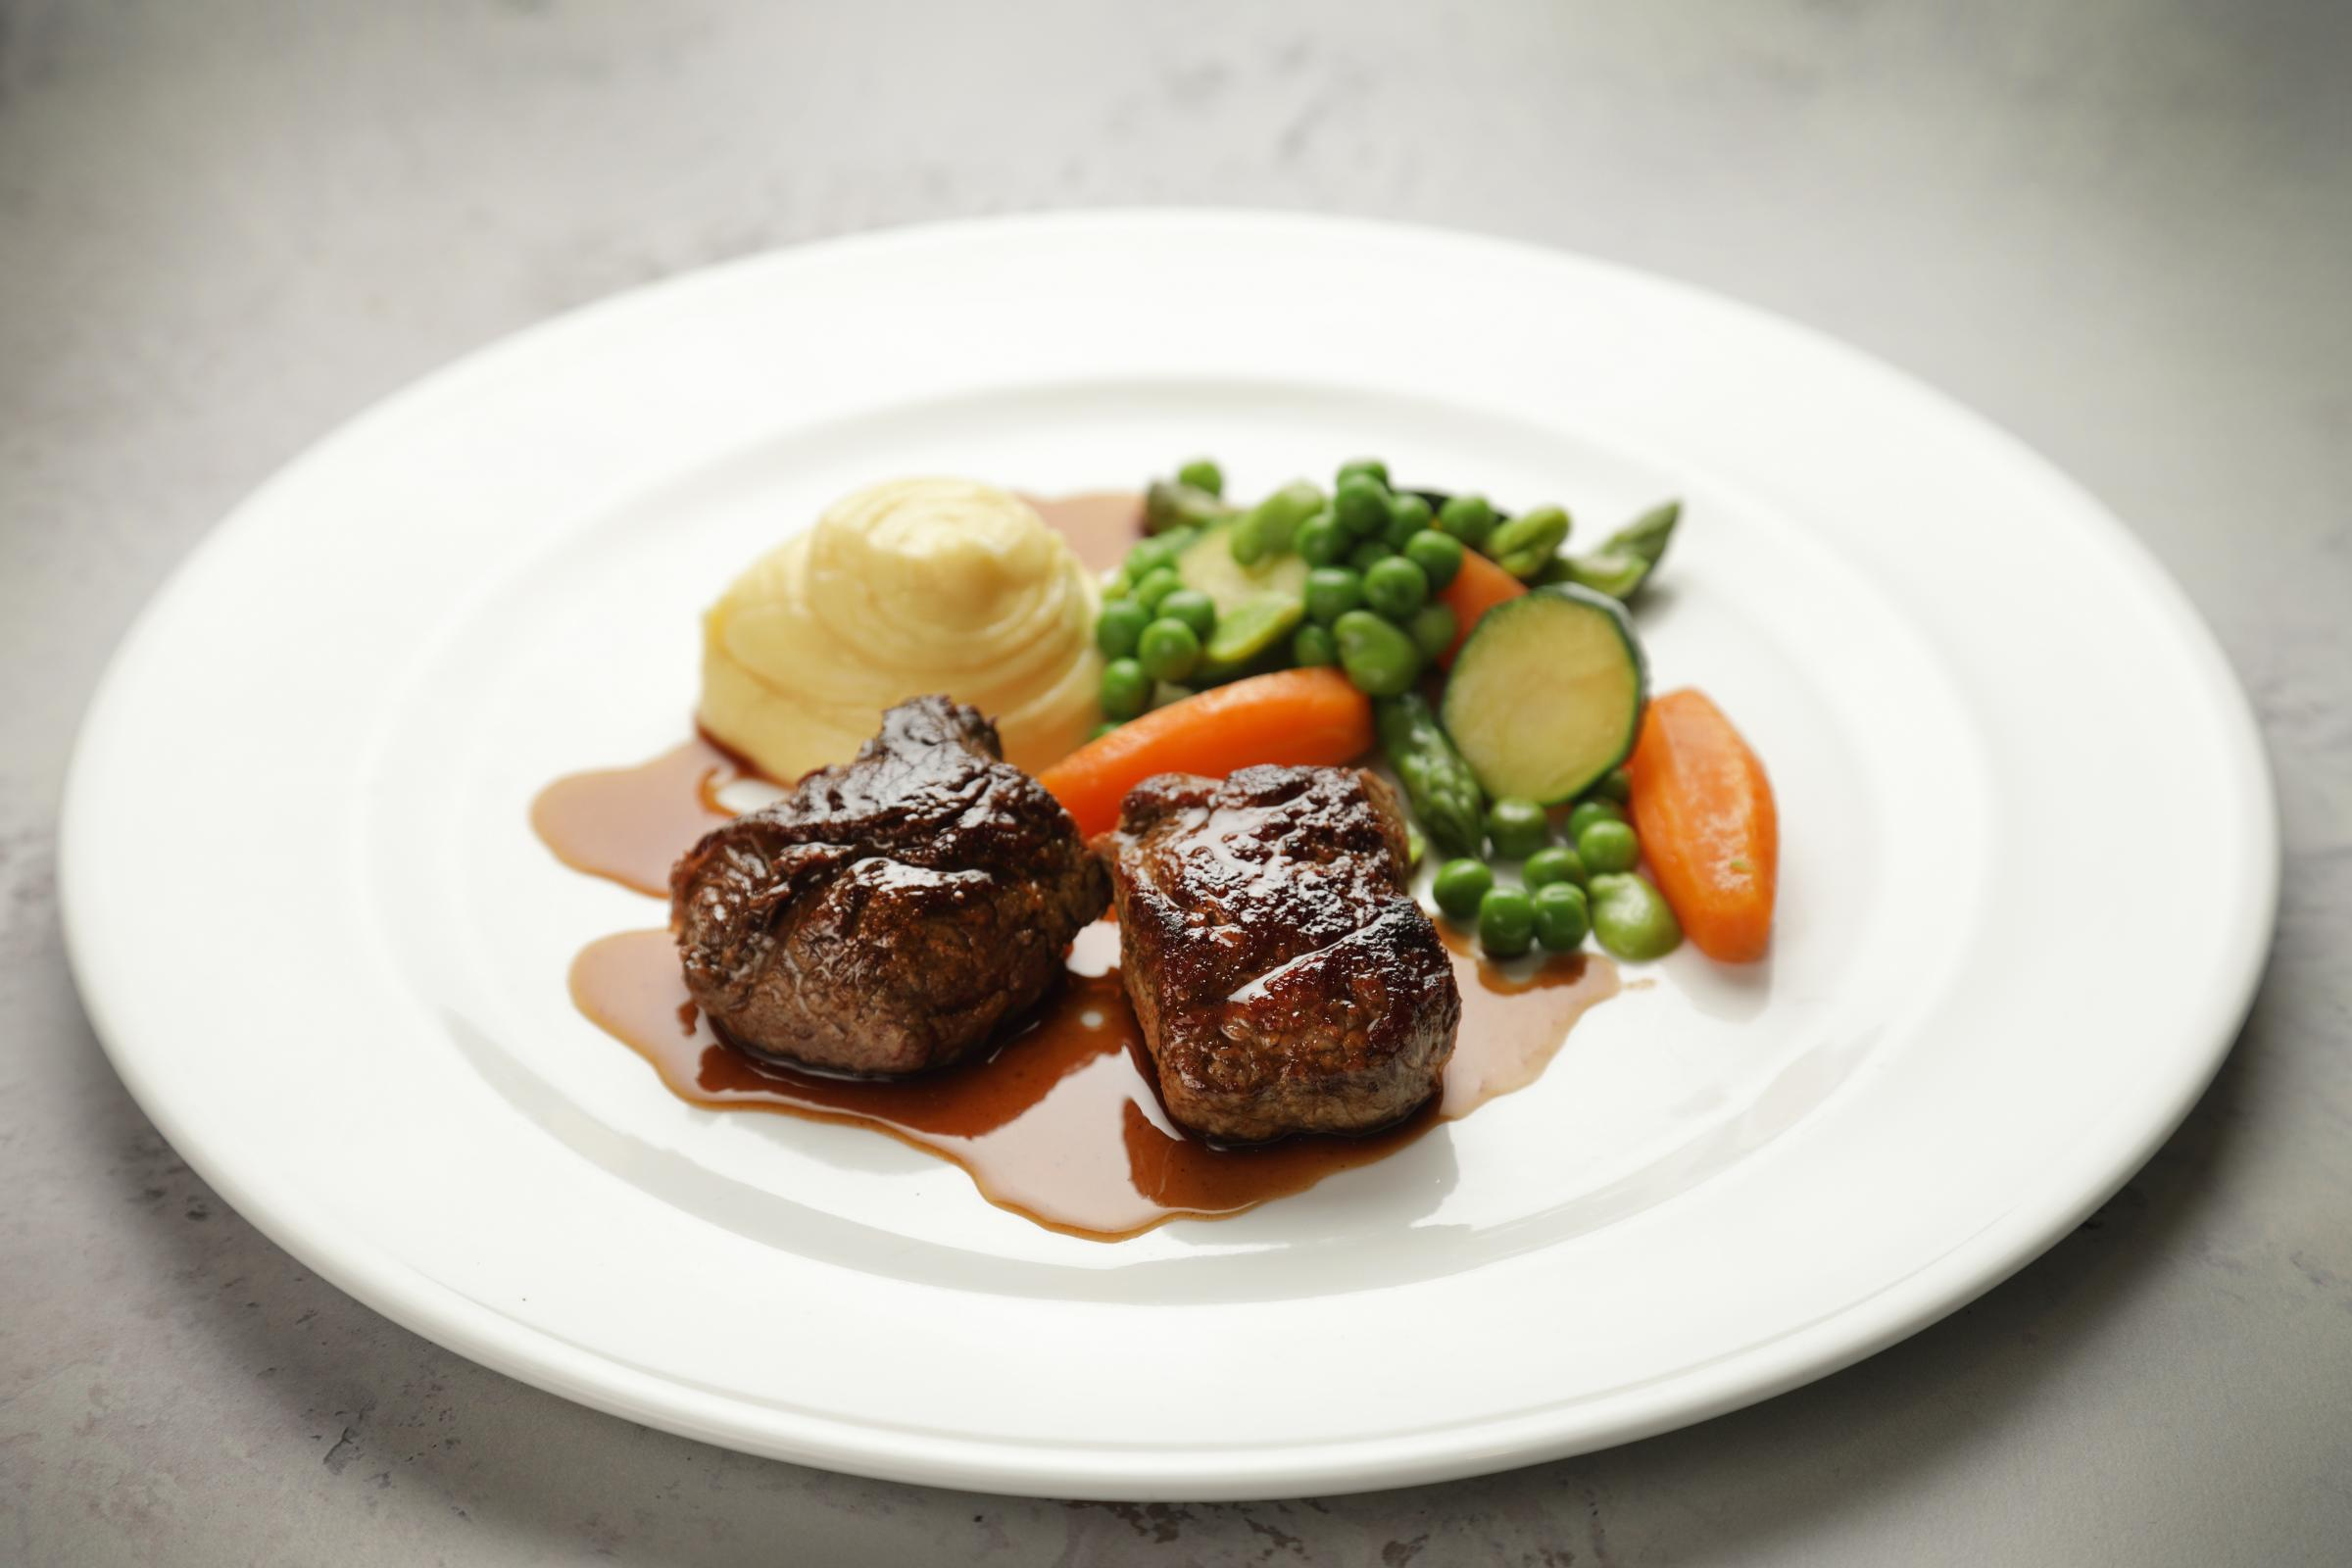 Chef Brian Maule: Medallion of scotch beef, creamed potatoes and seasonal vegetables